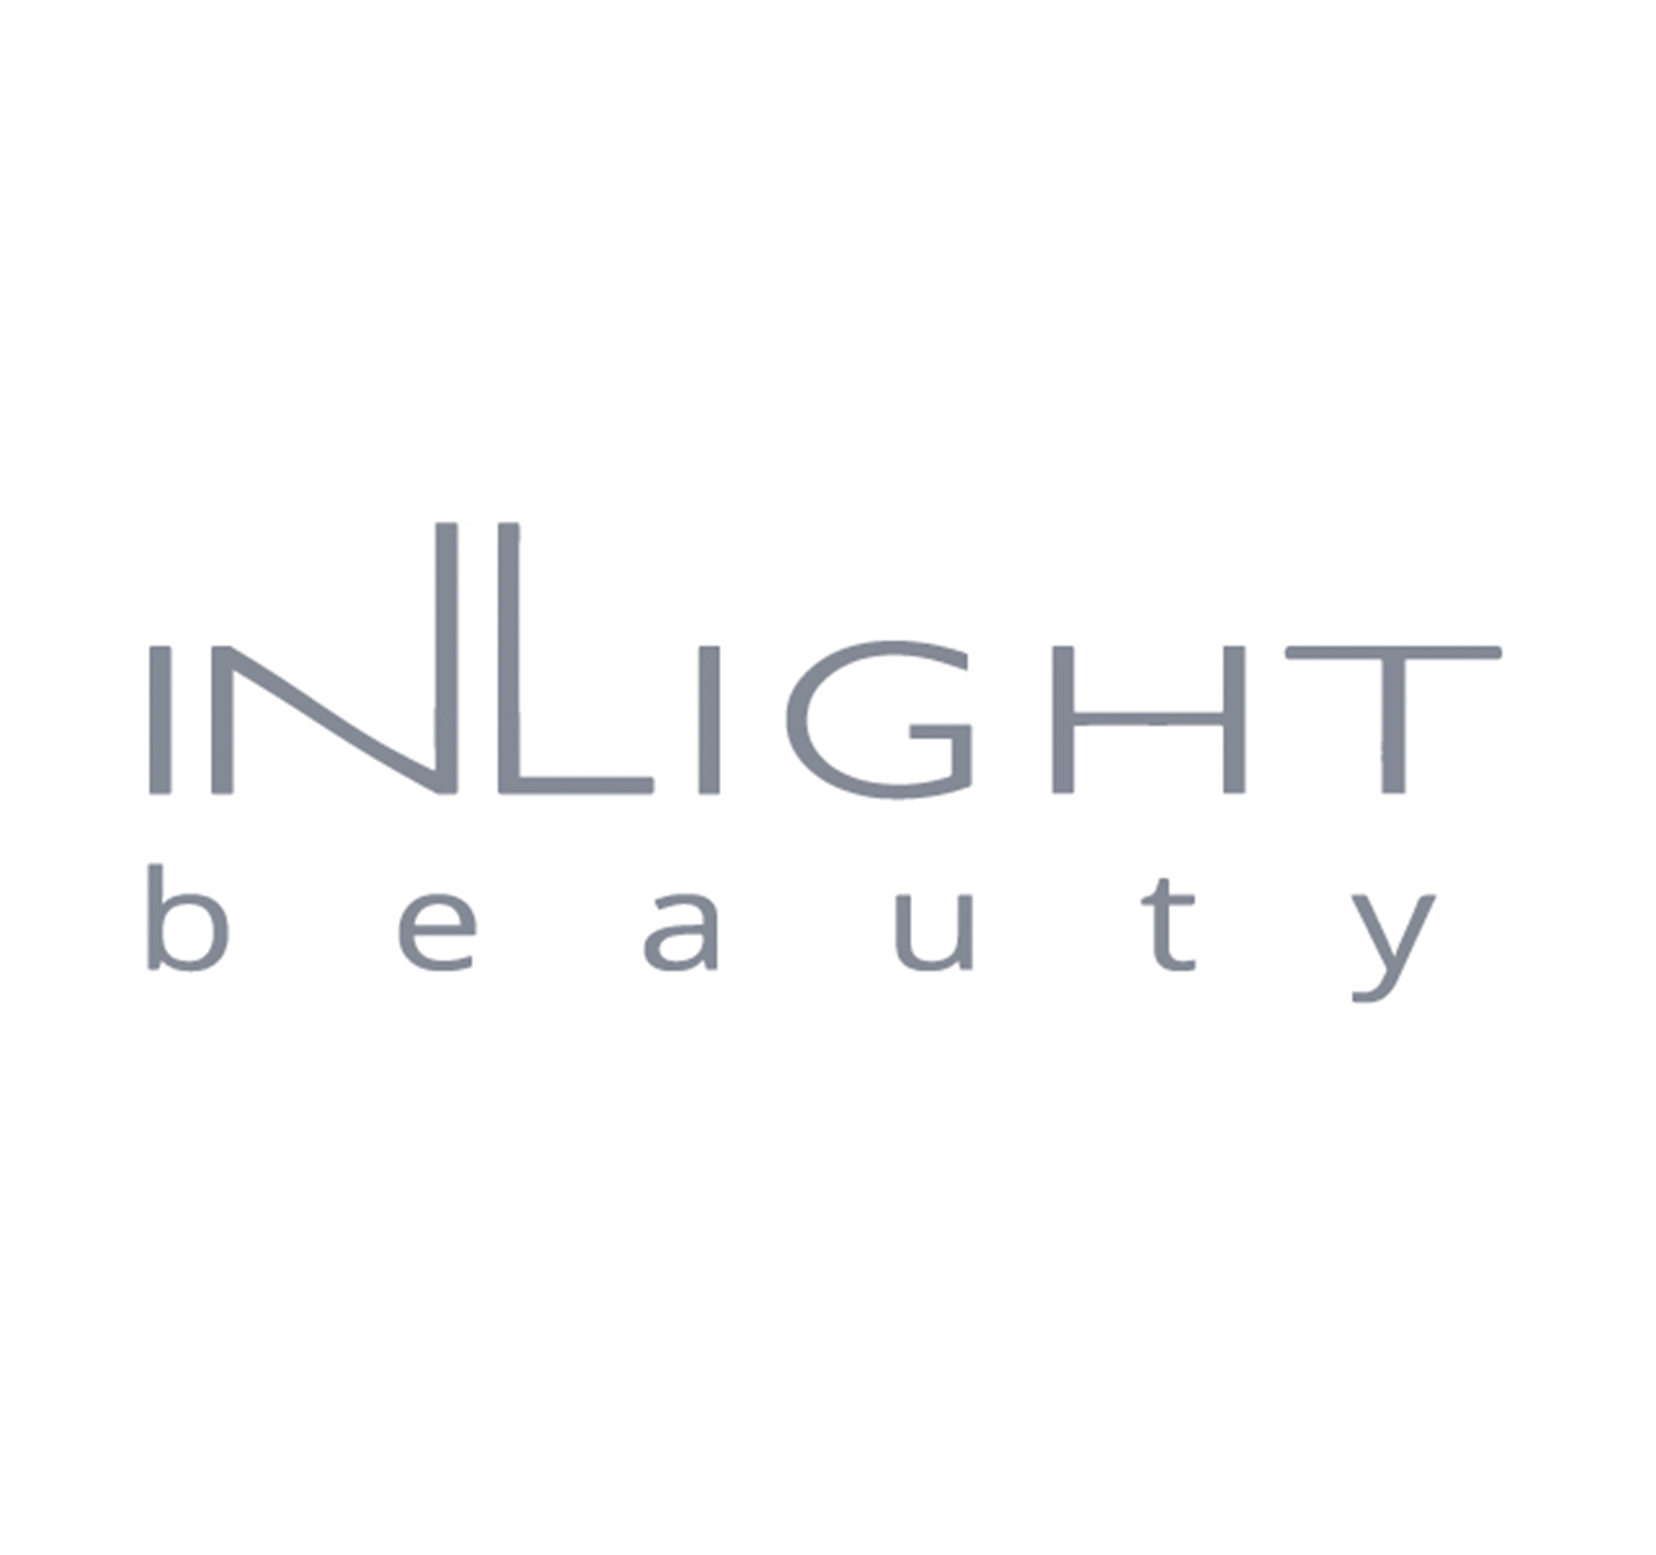 Inlight Beauty